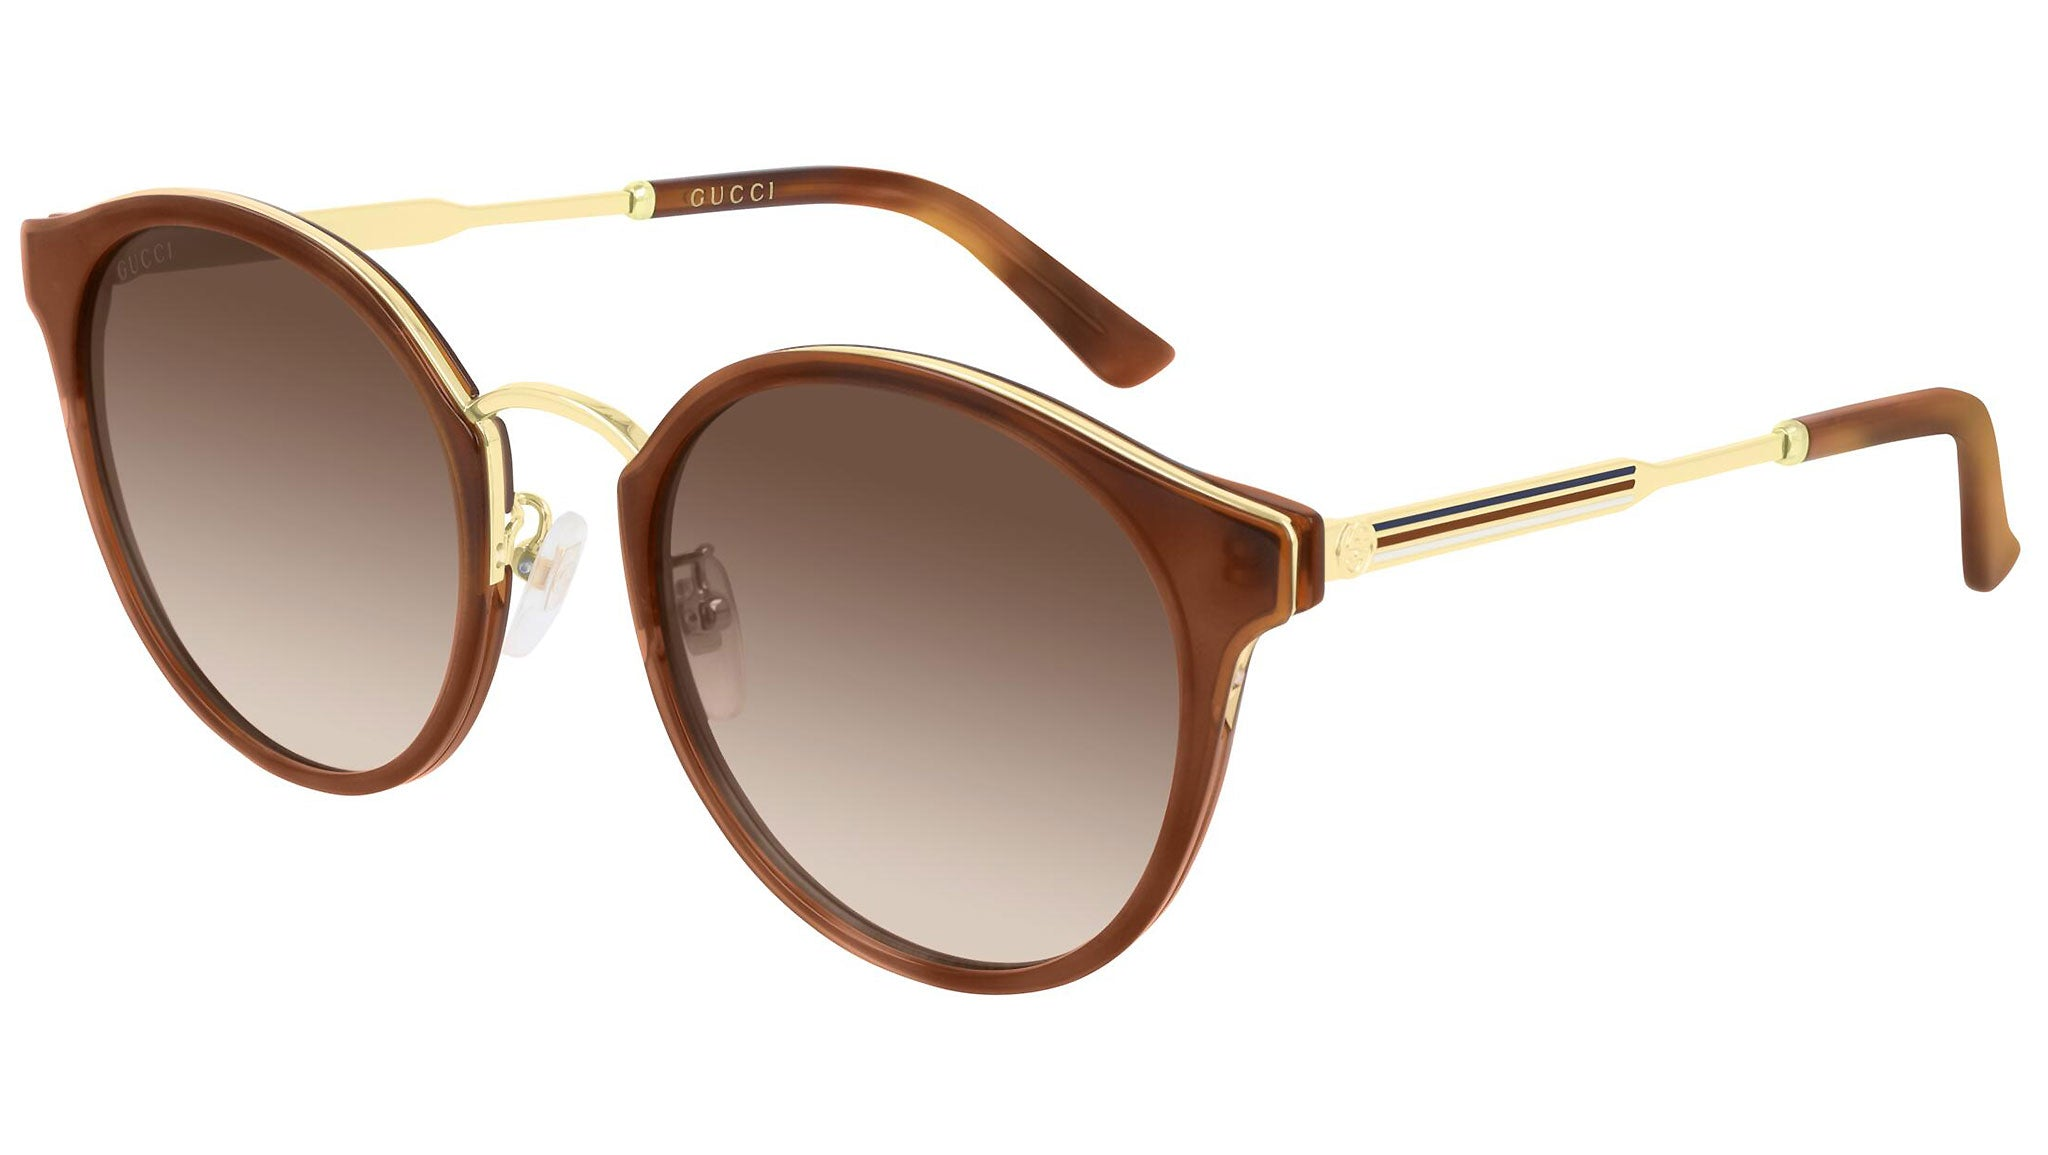 GG0588SK gold havana and brown